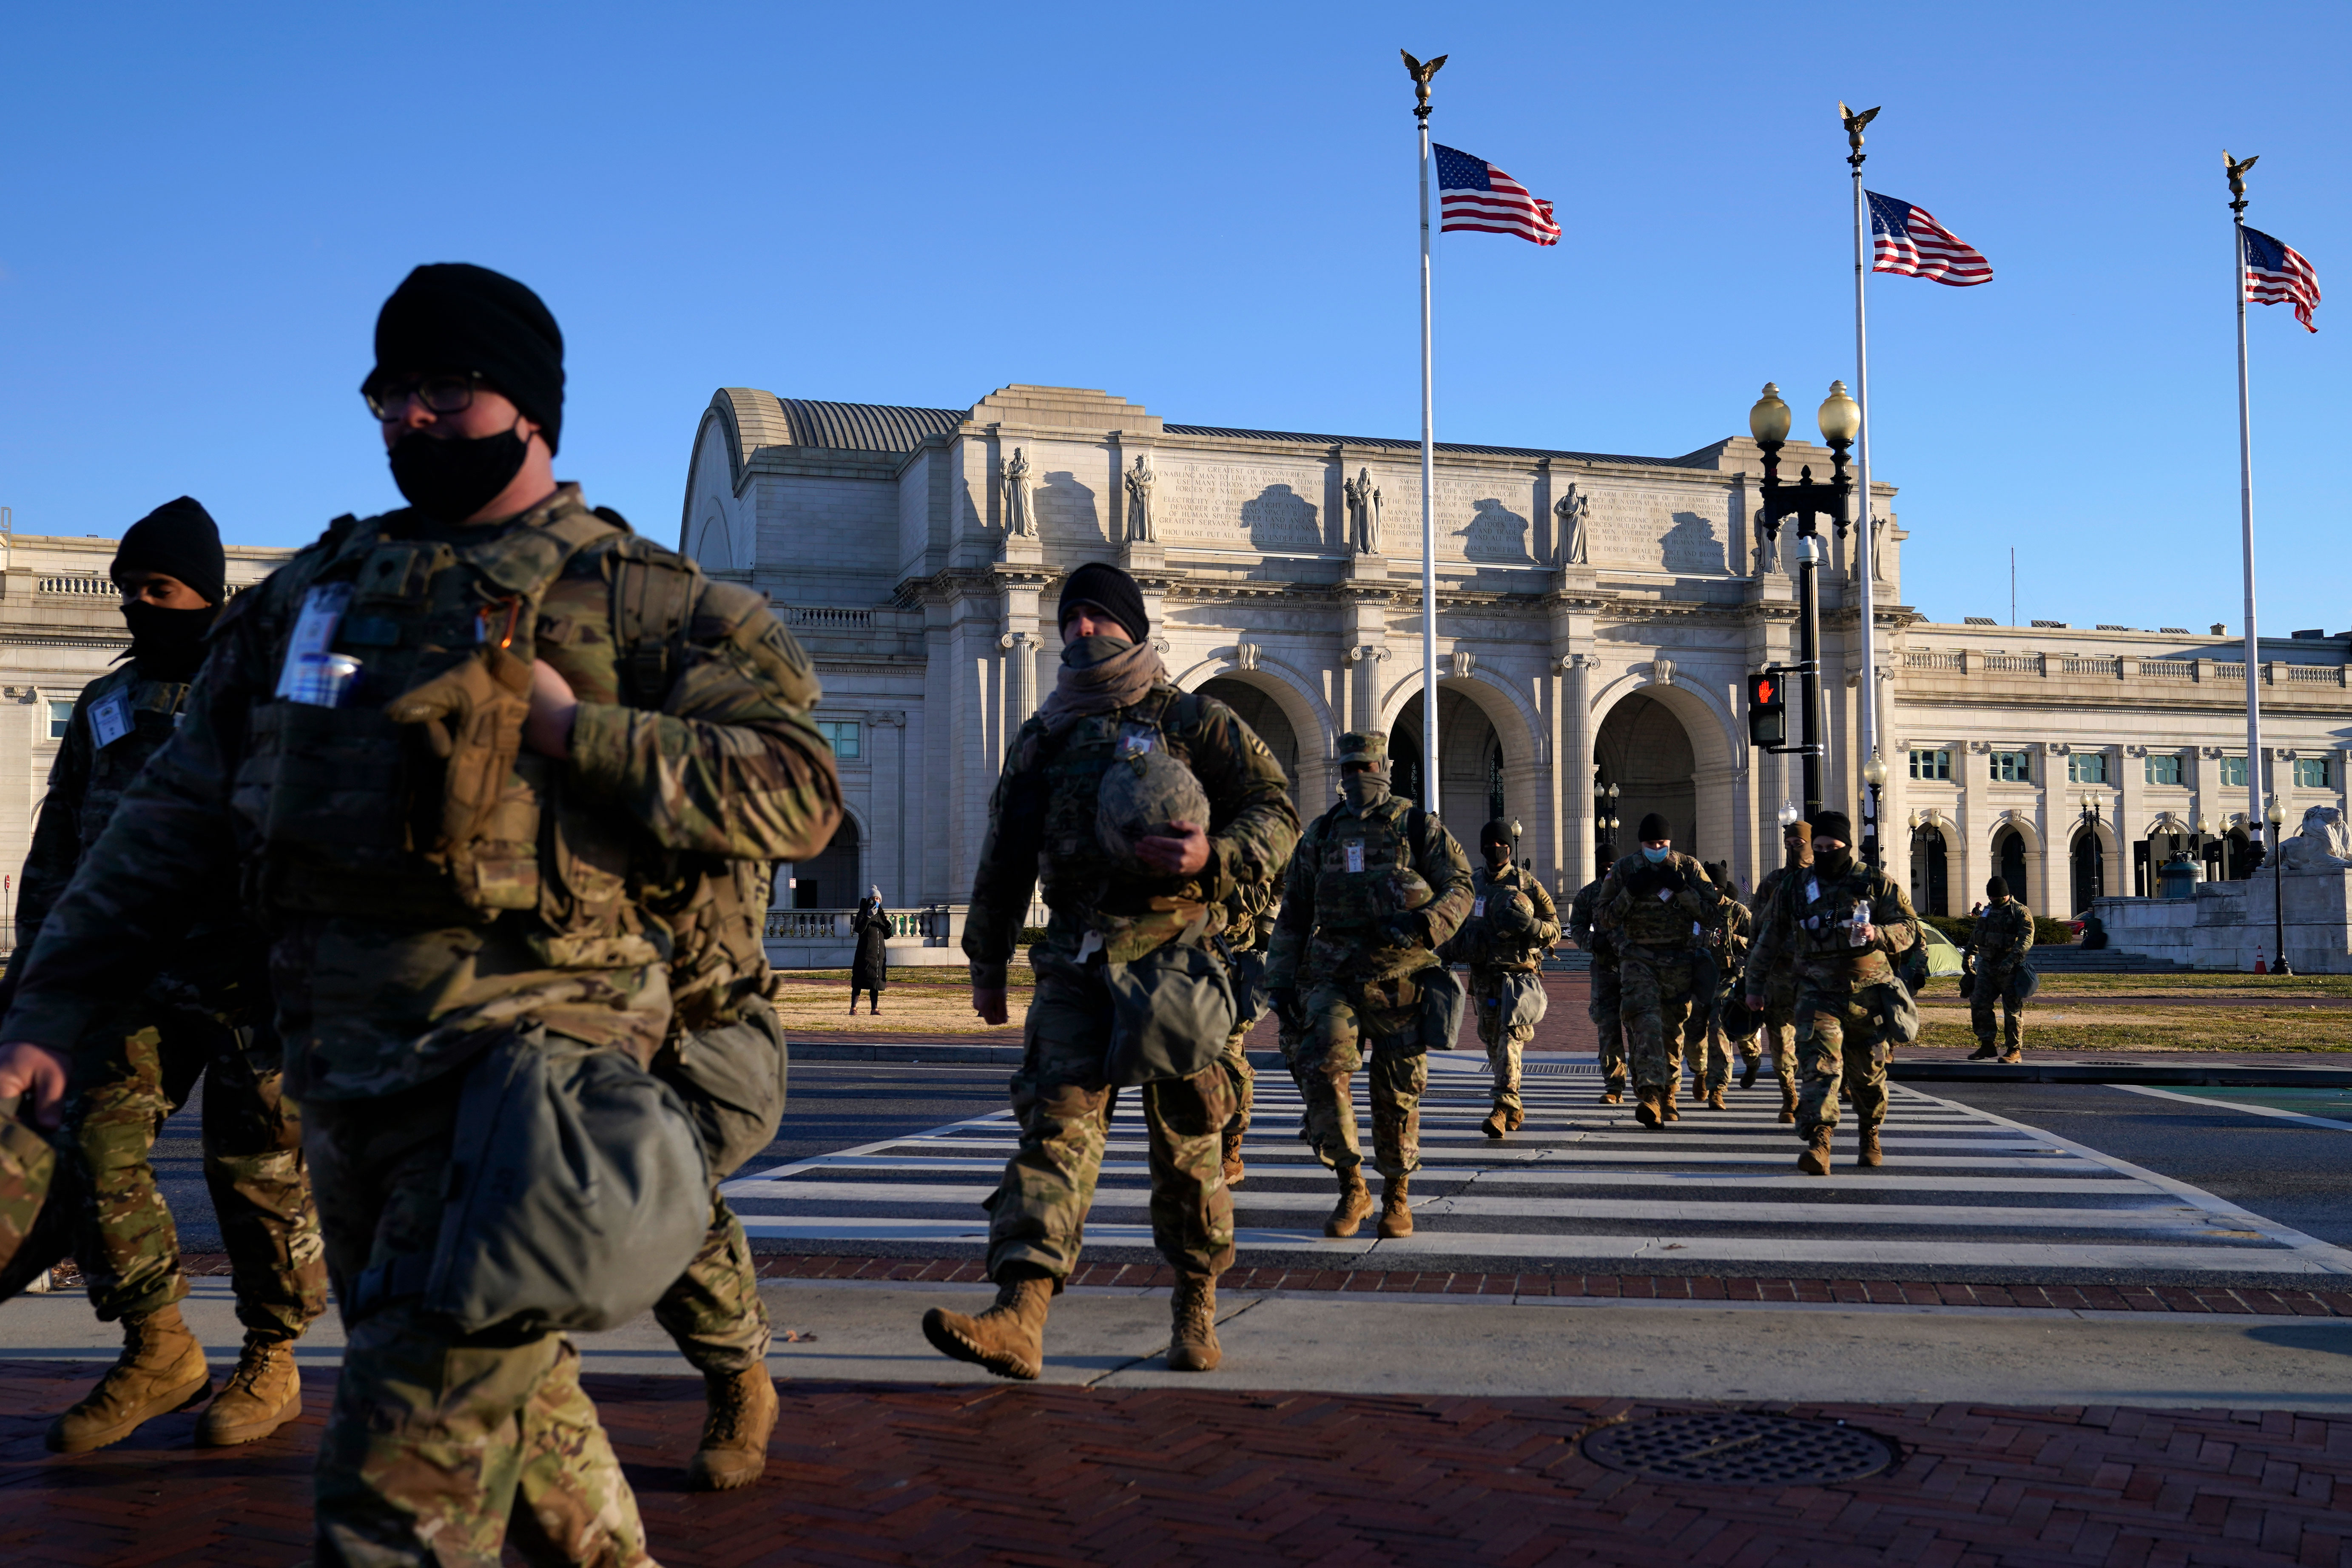 Members of the National Guard walk from Union Station to the Capitol in Washington, DC, as events get under way for Joe Biden's inauguration ceremony on January 20.